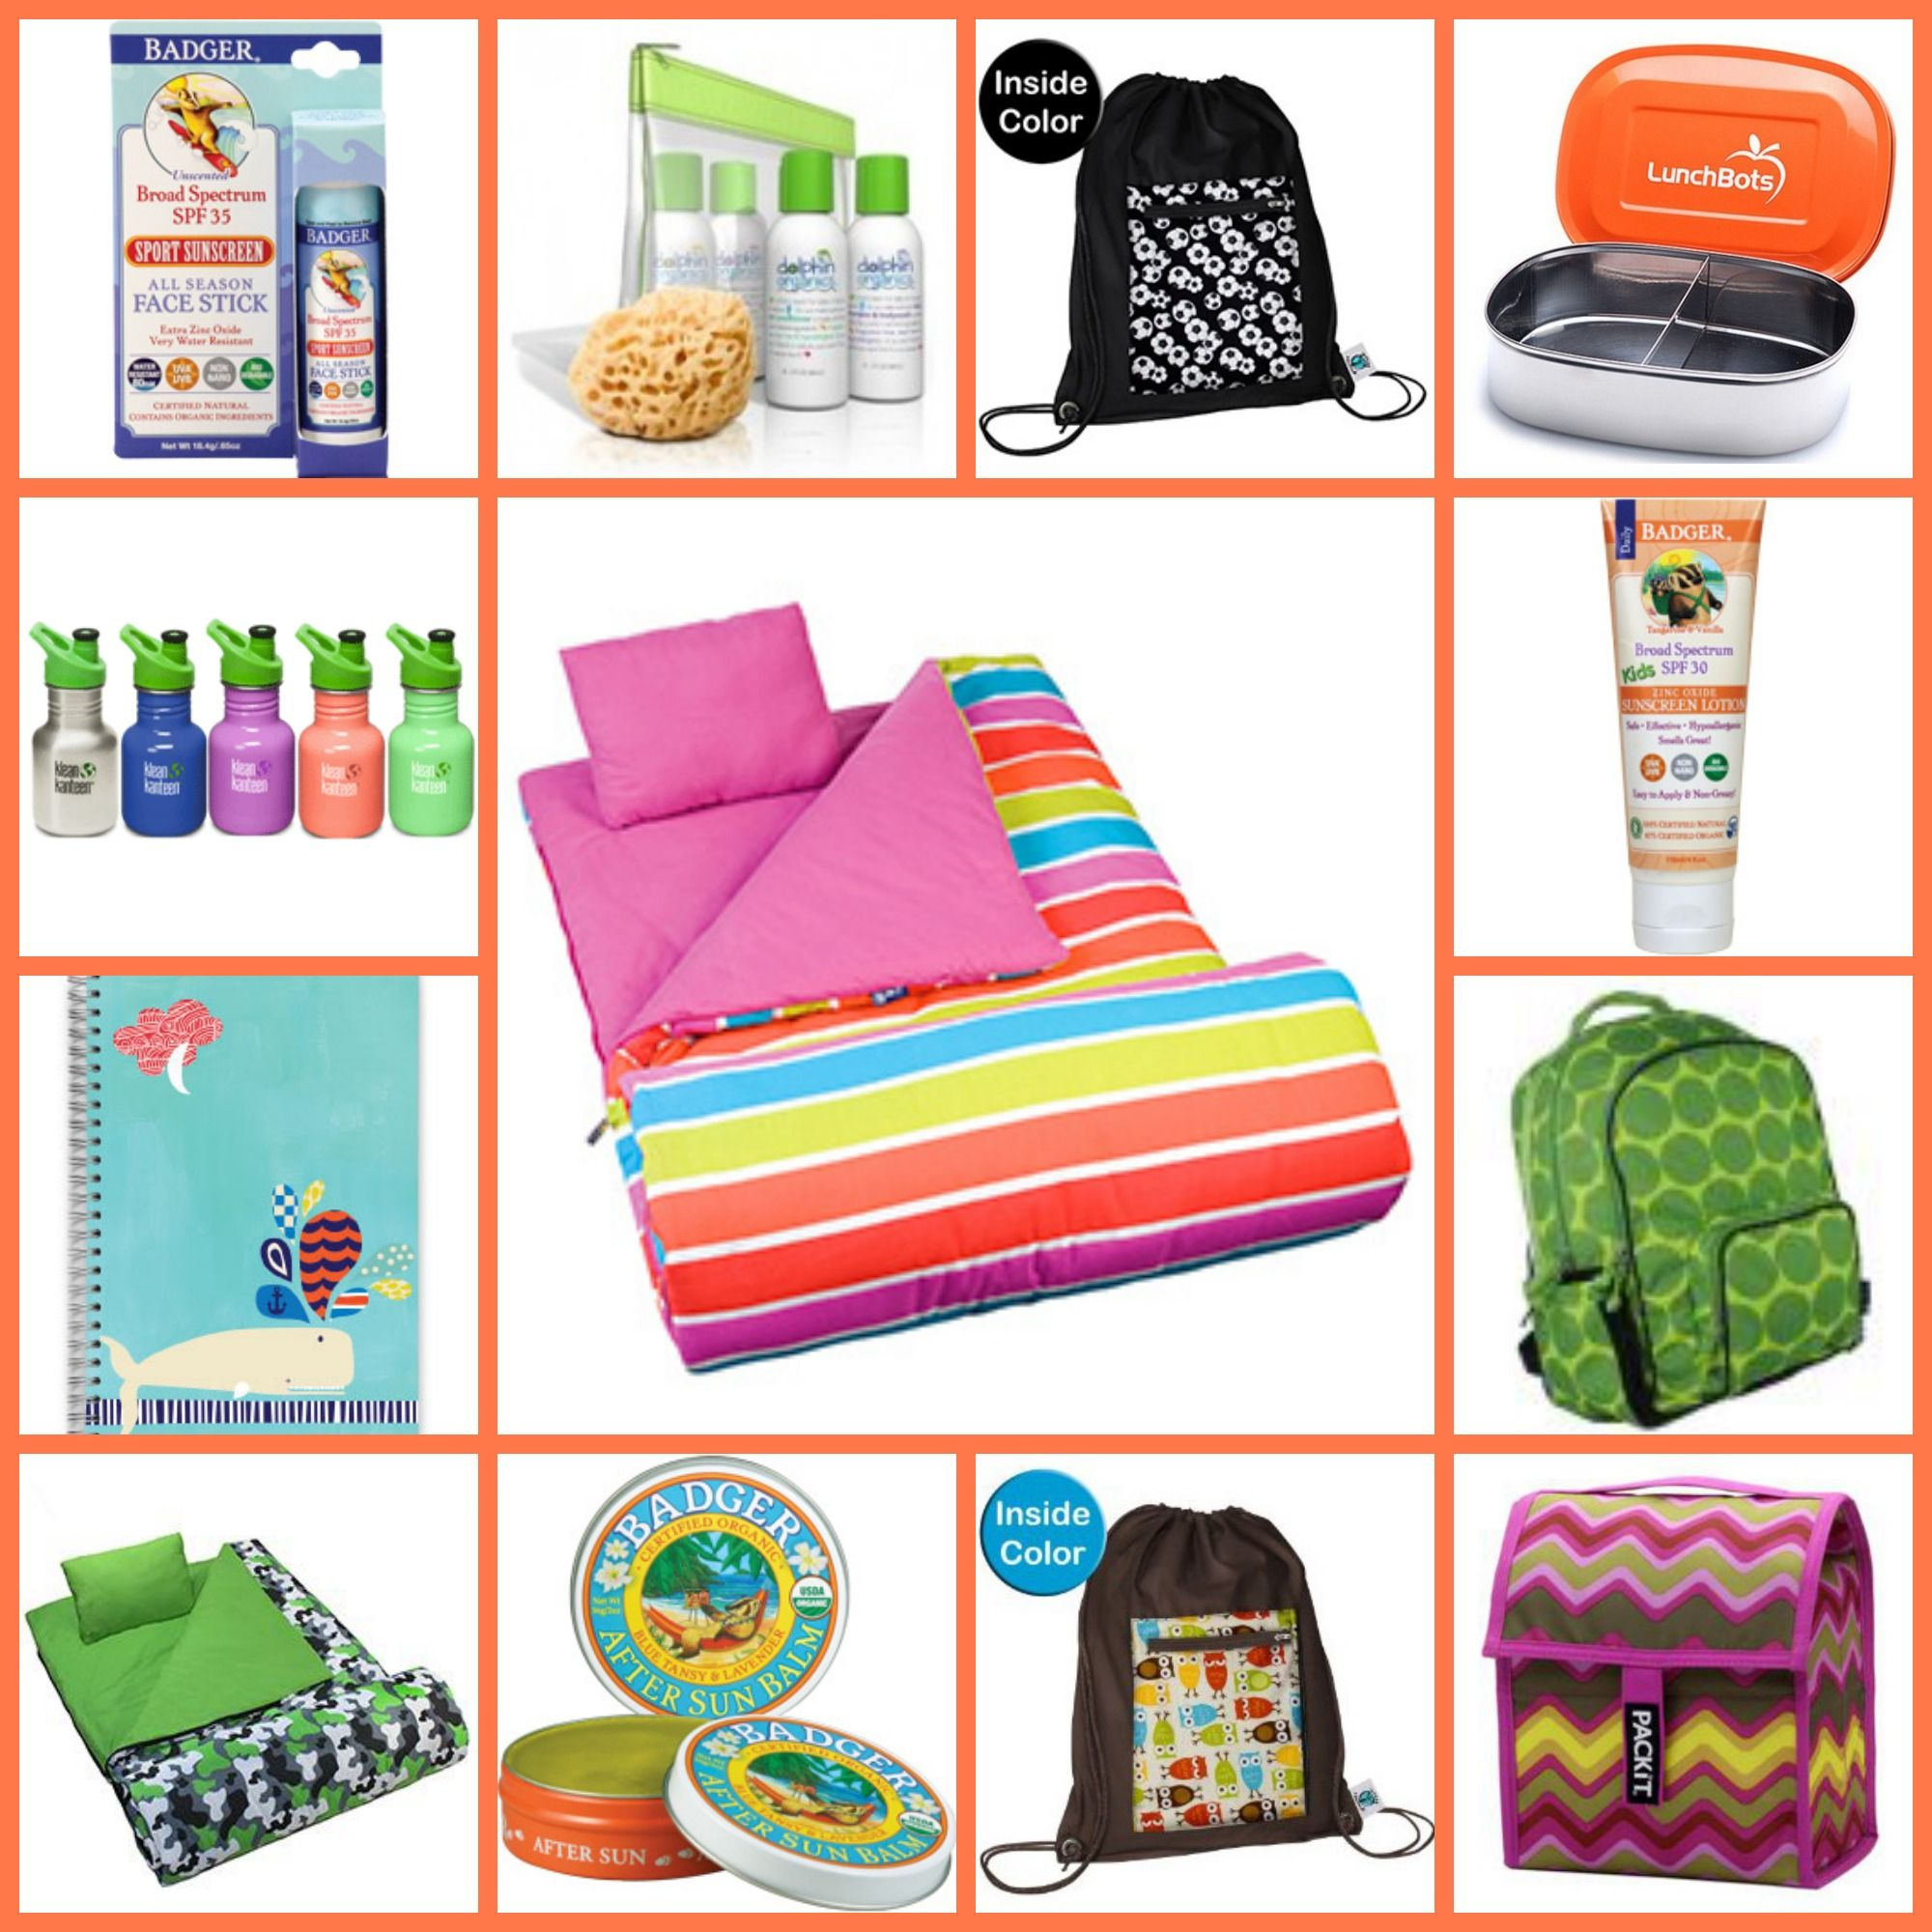 Pin by MightyNest on Summertime | Summer camp care package ...